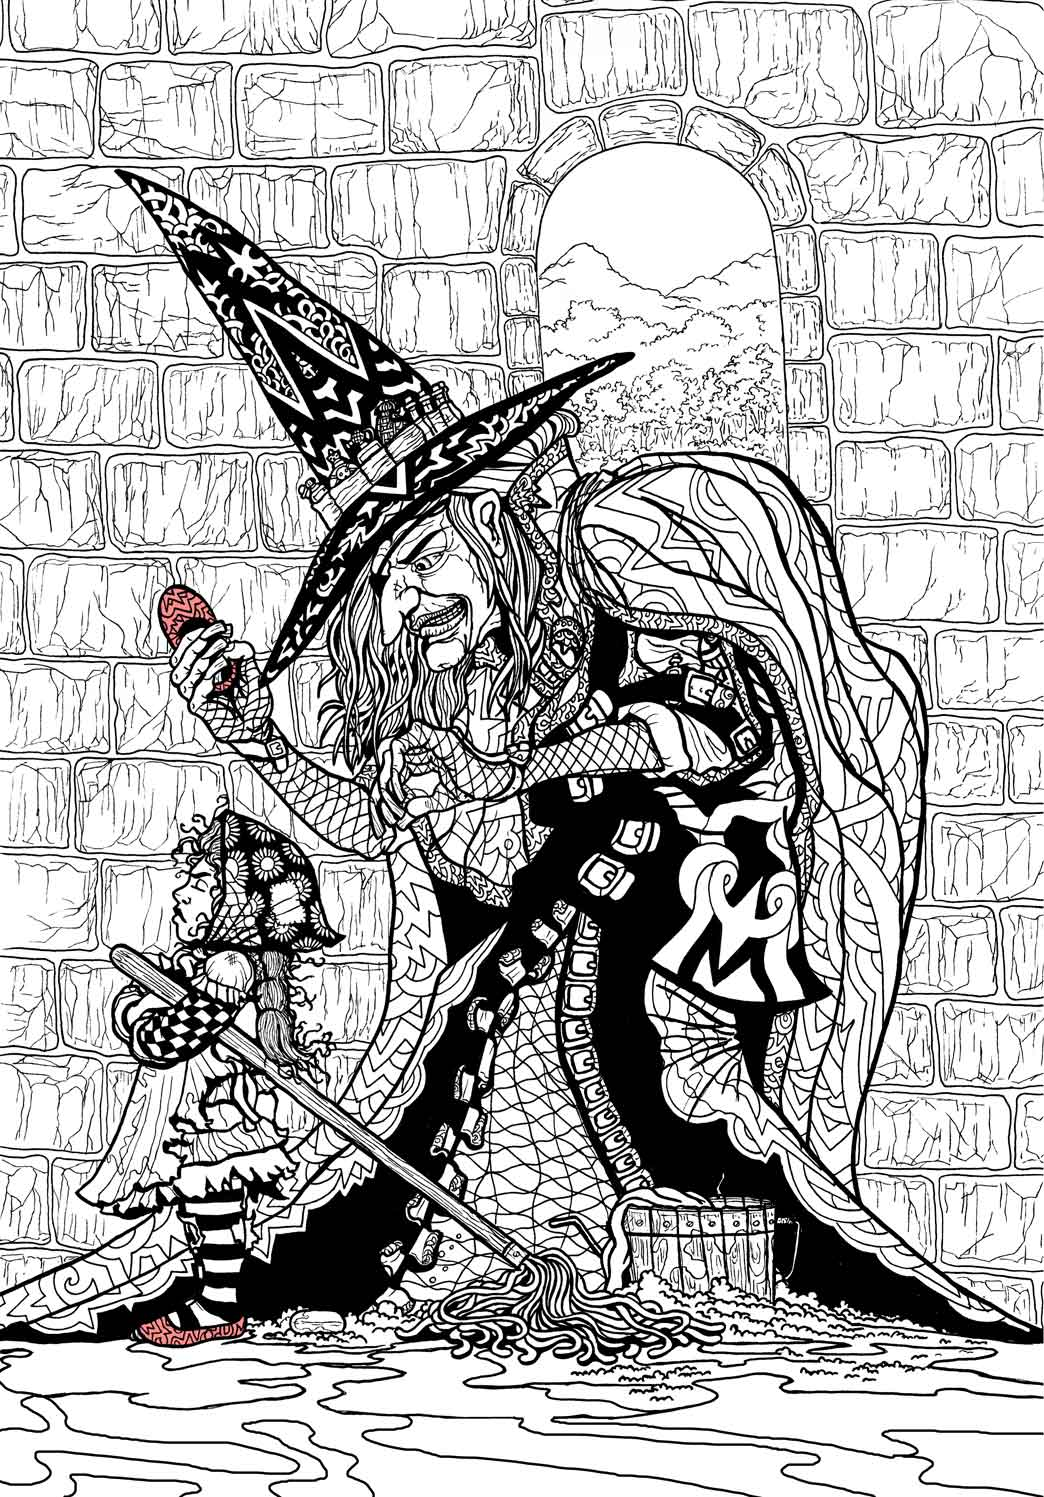 Wizard of Oz Coloring Book by Ethan Mongin at Coroflot.com